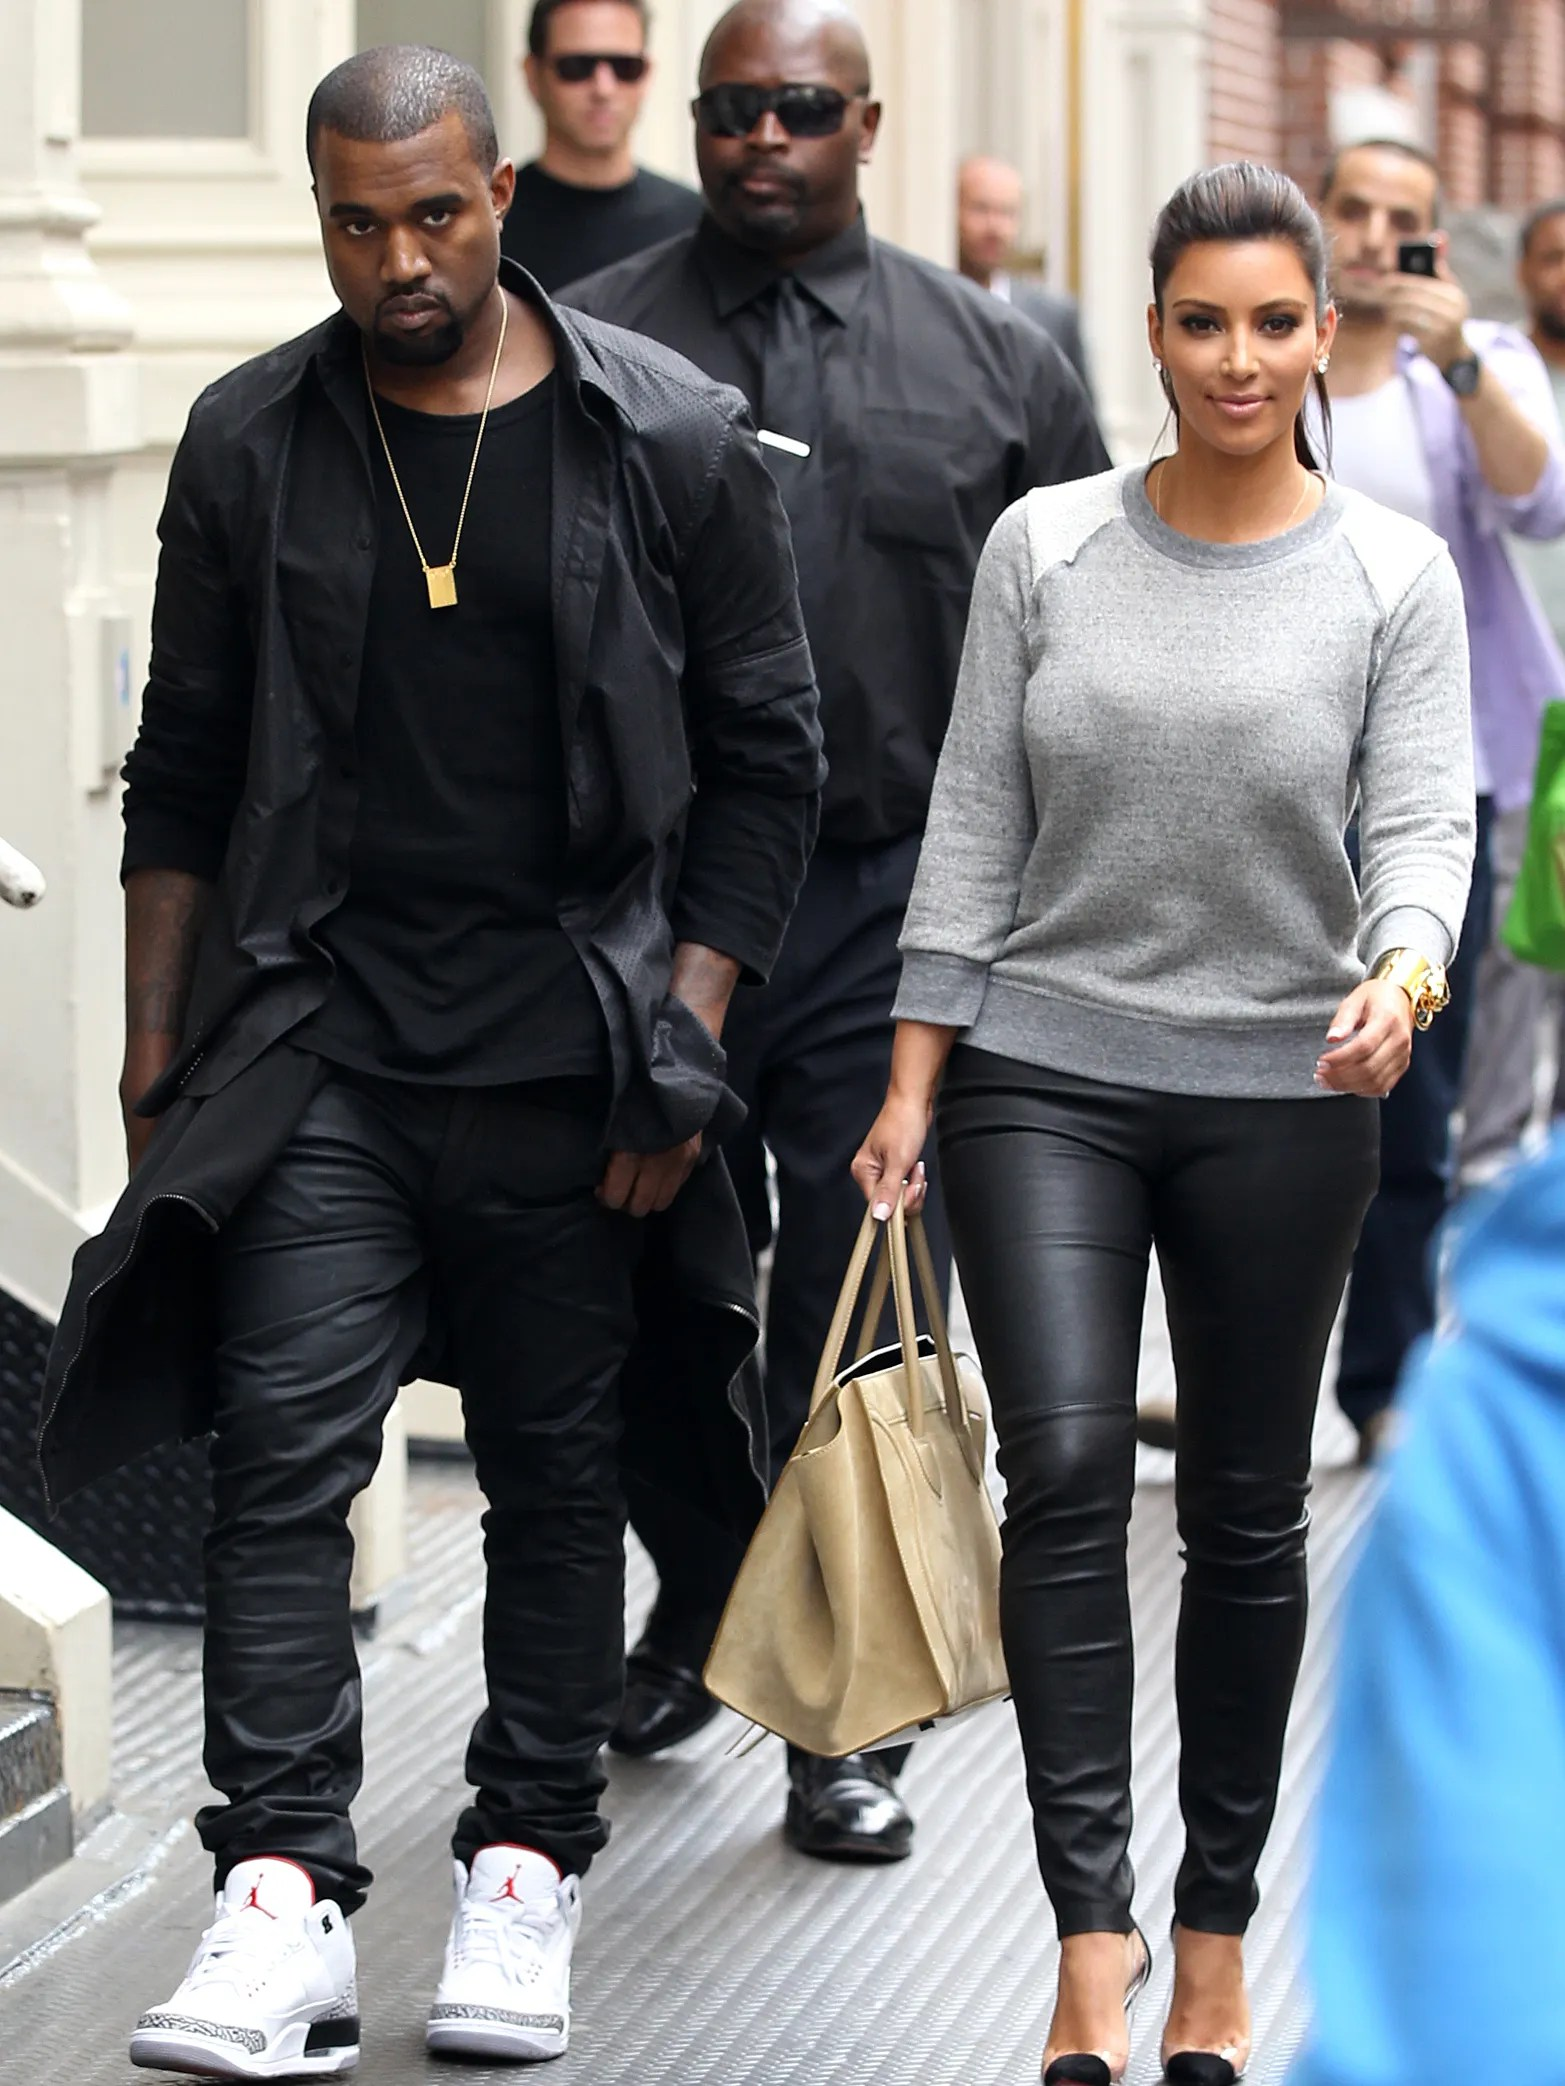 A perpetually annoyed-looking West walks with Kardashian in New York City in April 2012. Why so mad, Yeezus?